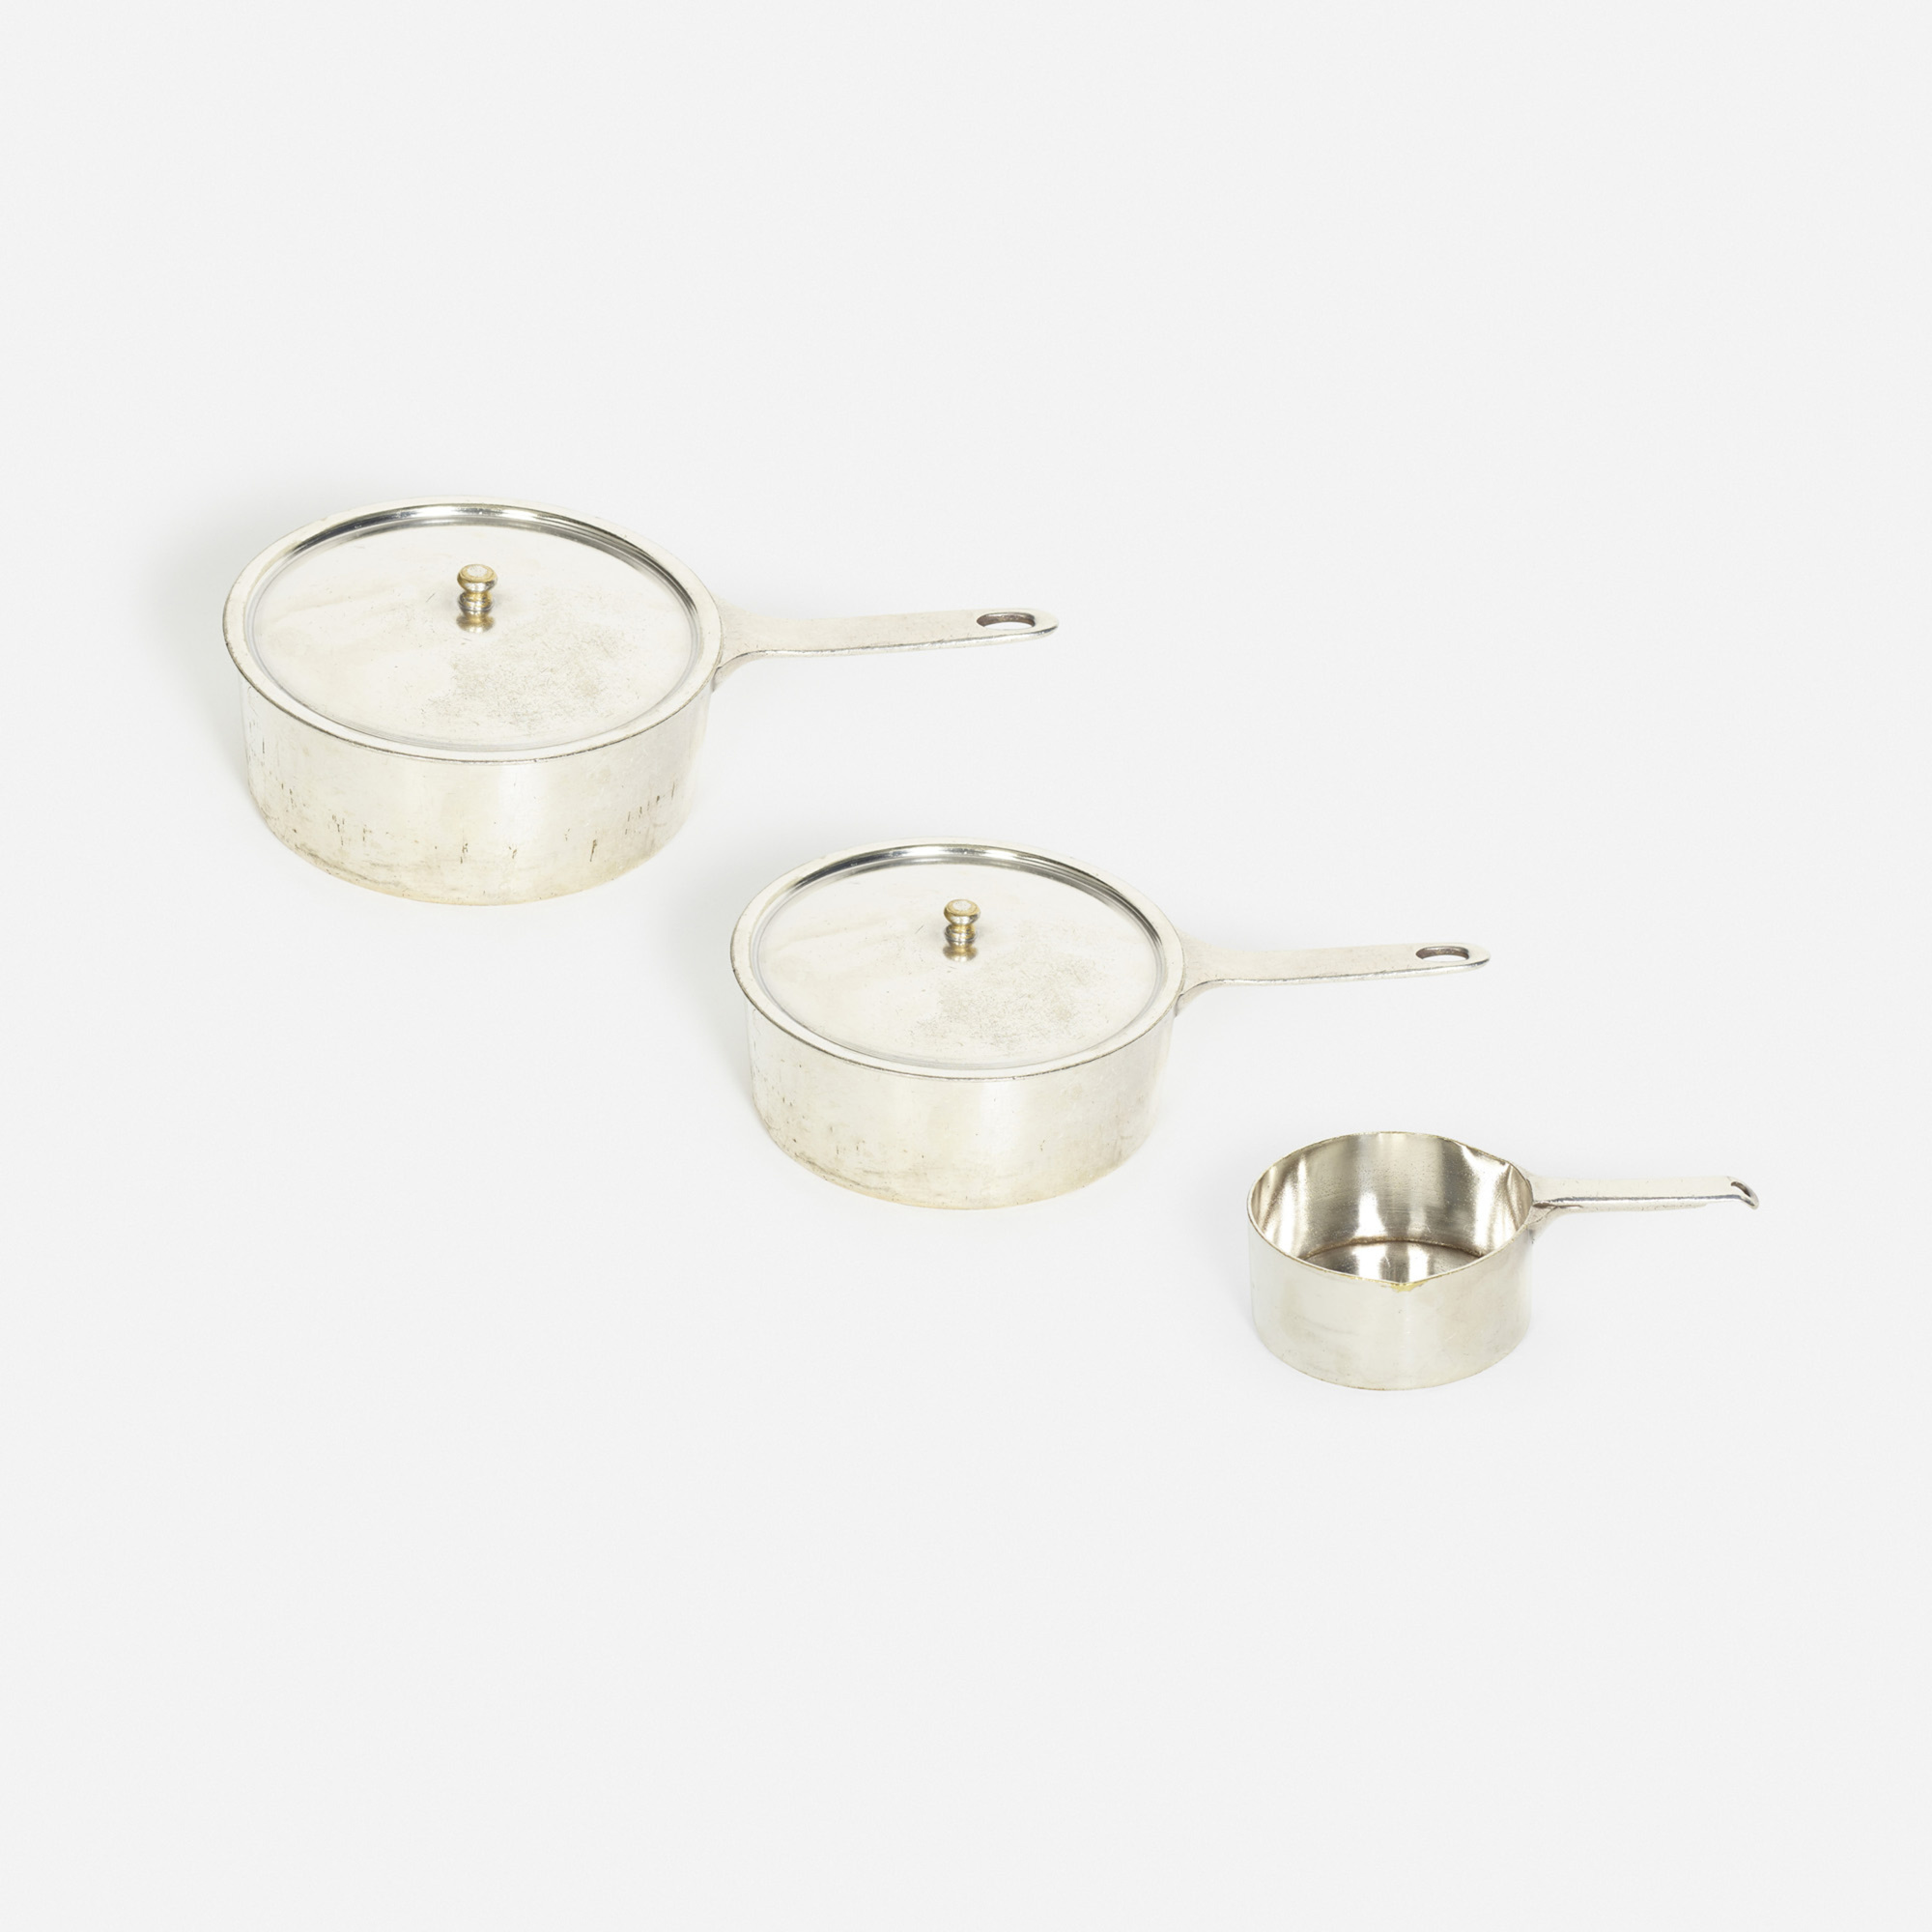 854: Garth and Ada Louise Huxtable / sauce pots from the kitchen of The Four Seasons, set of three (1 of 1)